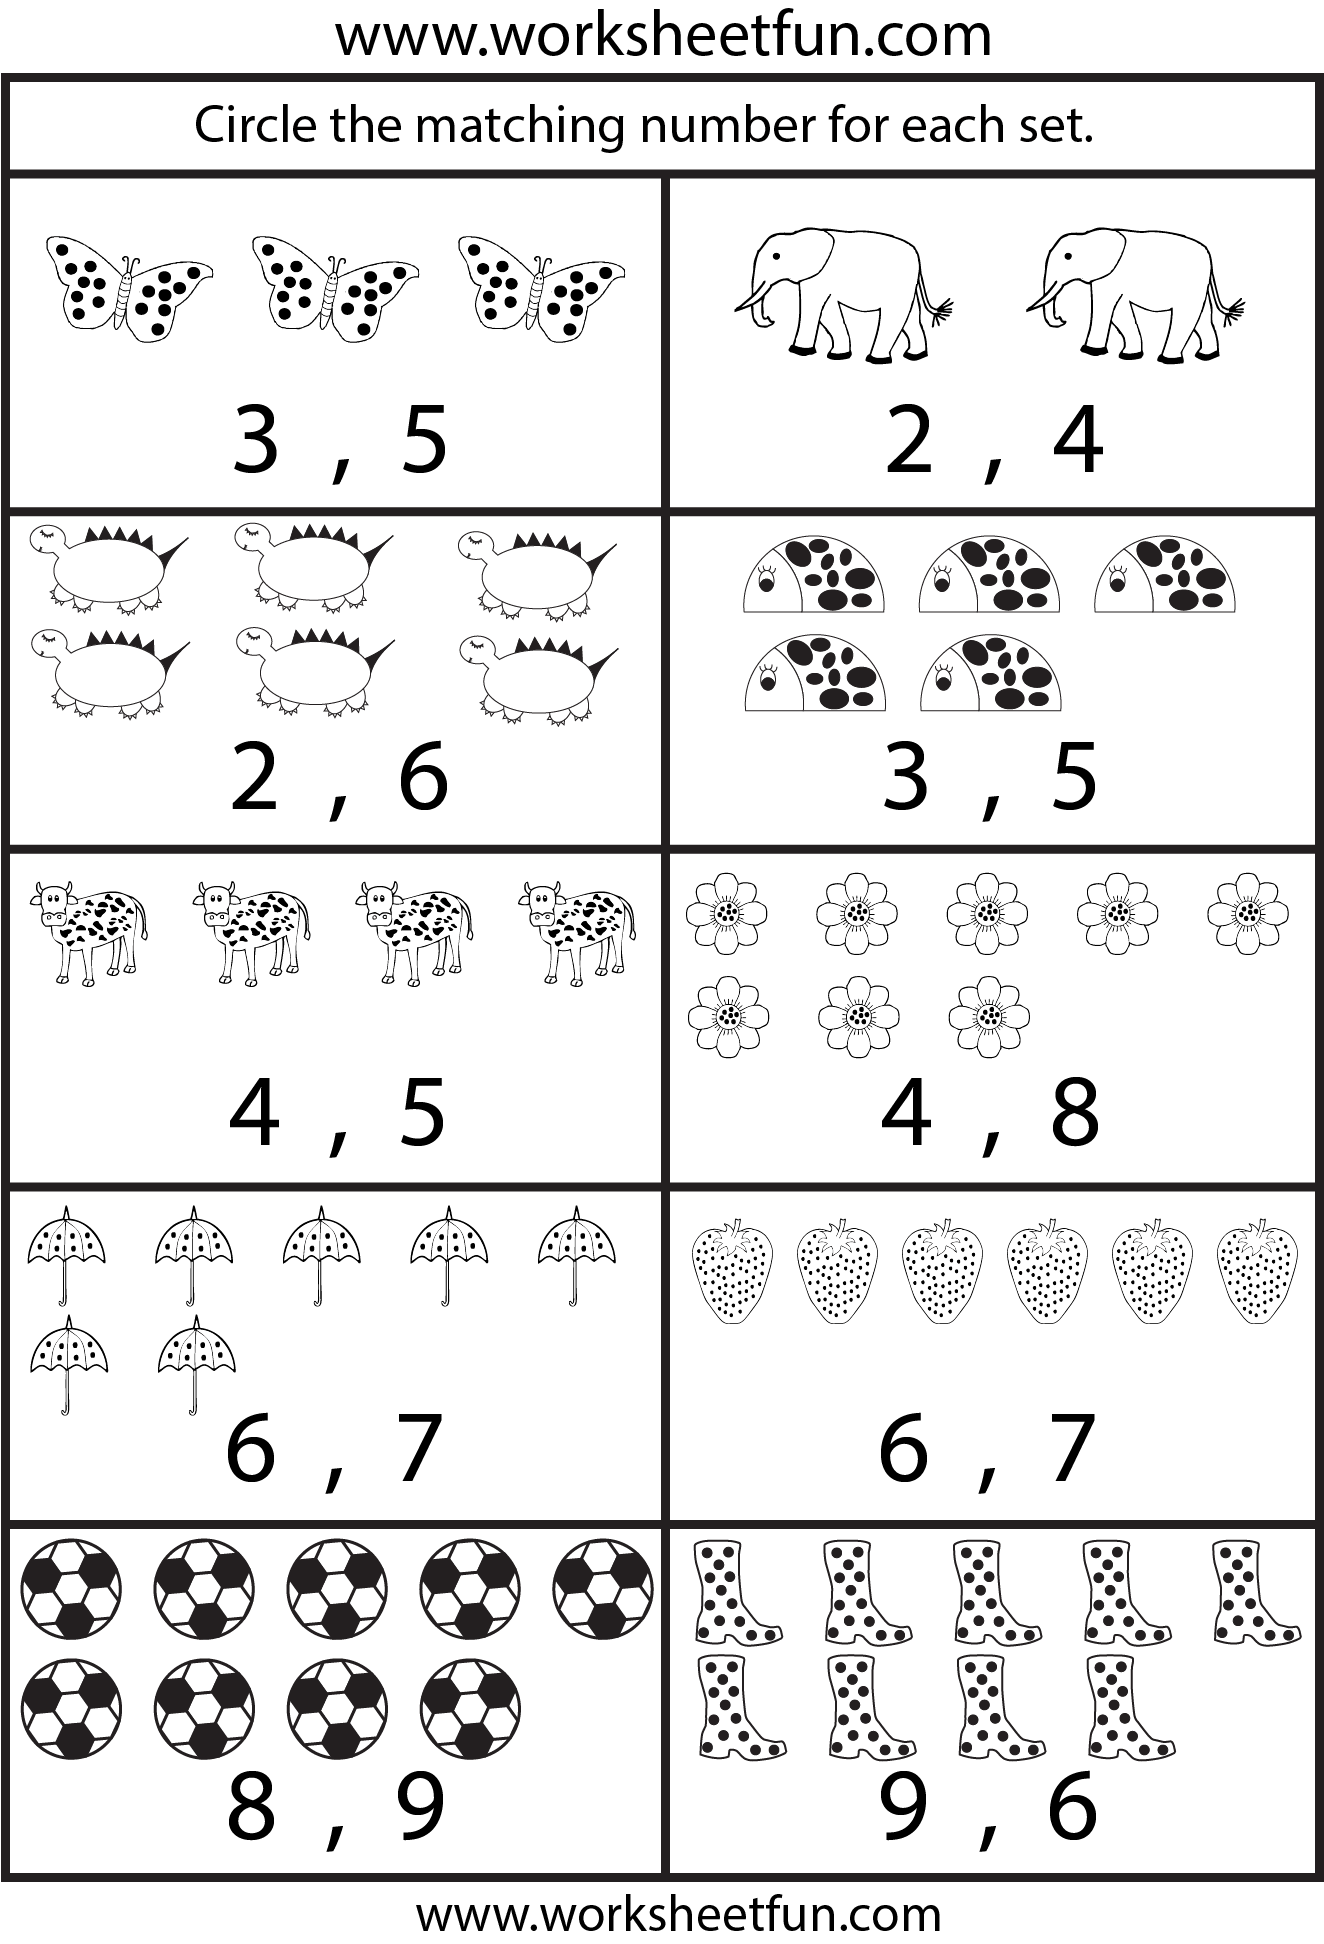 Worksheet For Counting 1 20